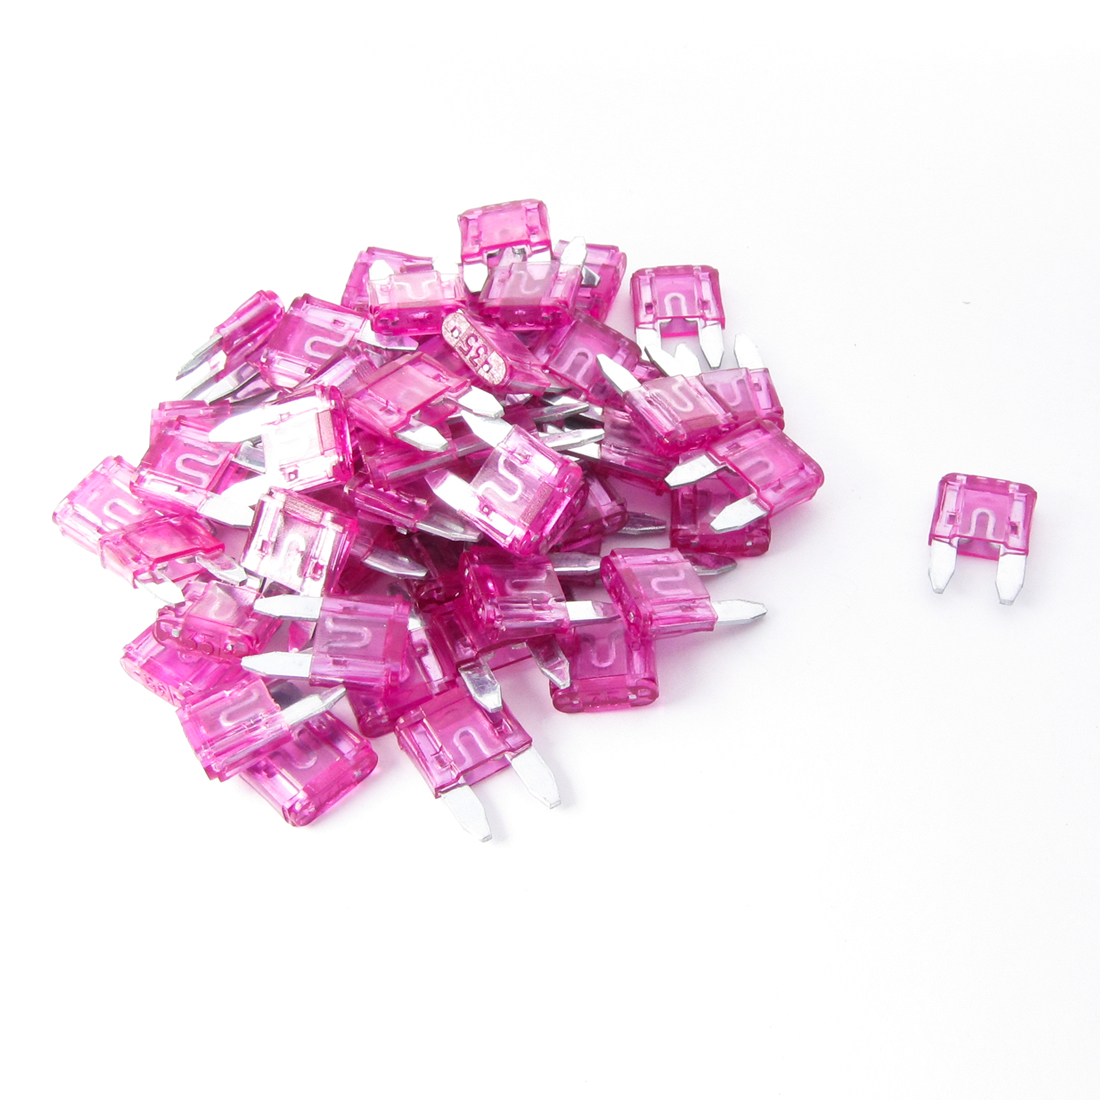 Car Auto 35A Blade ATC Fuses Assortment Kit Fuchsia 60 Pcs